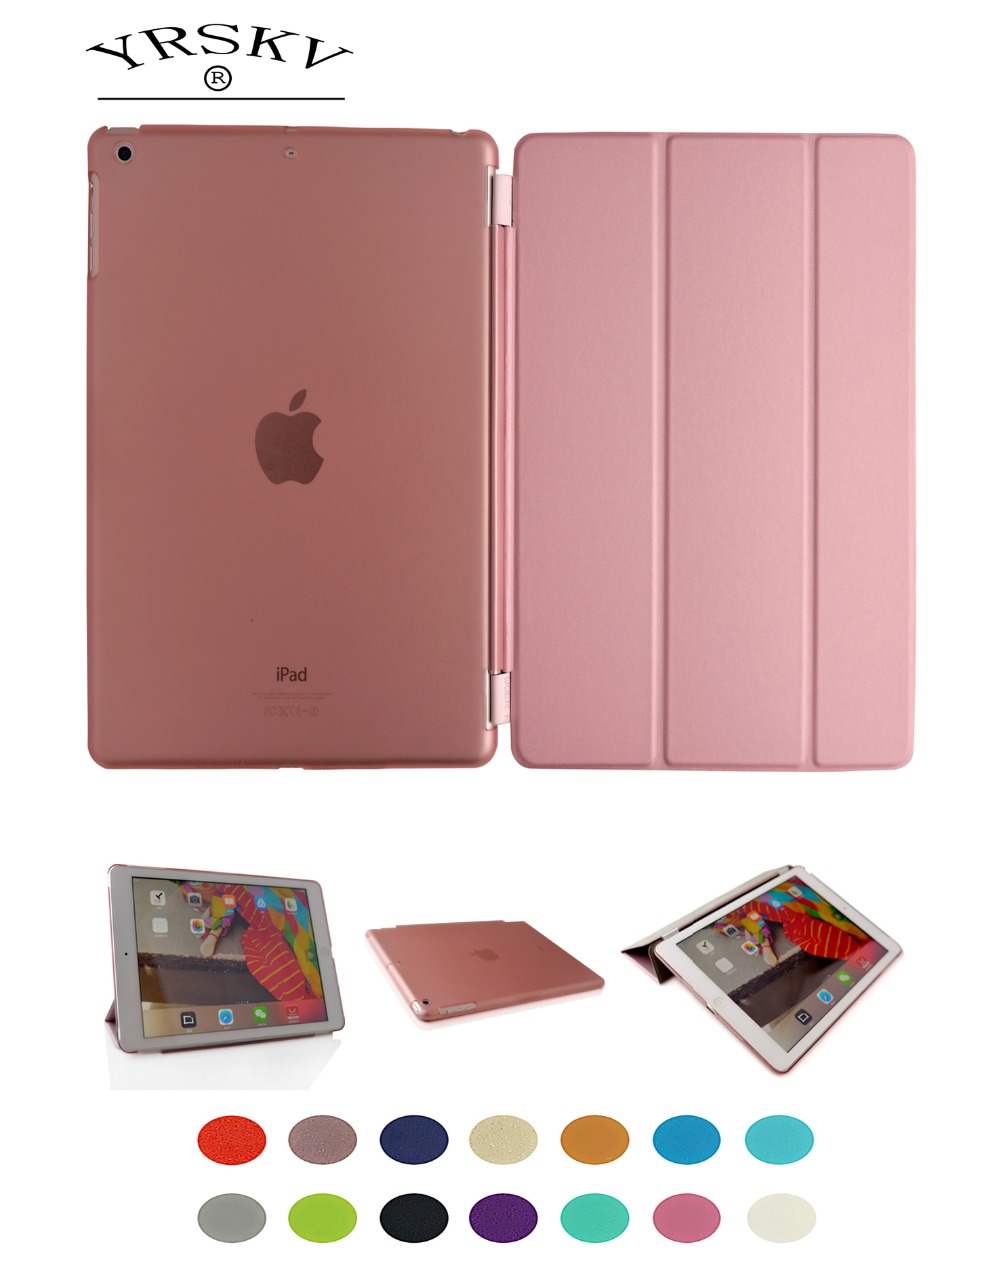 Case for iPad Air 1 2013 Release cover A1474 A1475 A1476 YRSKV split Smart cover Magnet wake up sleep For apple iPad Air1 shell for apple ipad air 1 full wrap leather case folio folding cover case with passport case card slot 9 7 inches a1474 a1475 ynmiwei